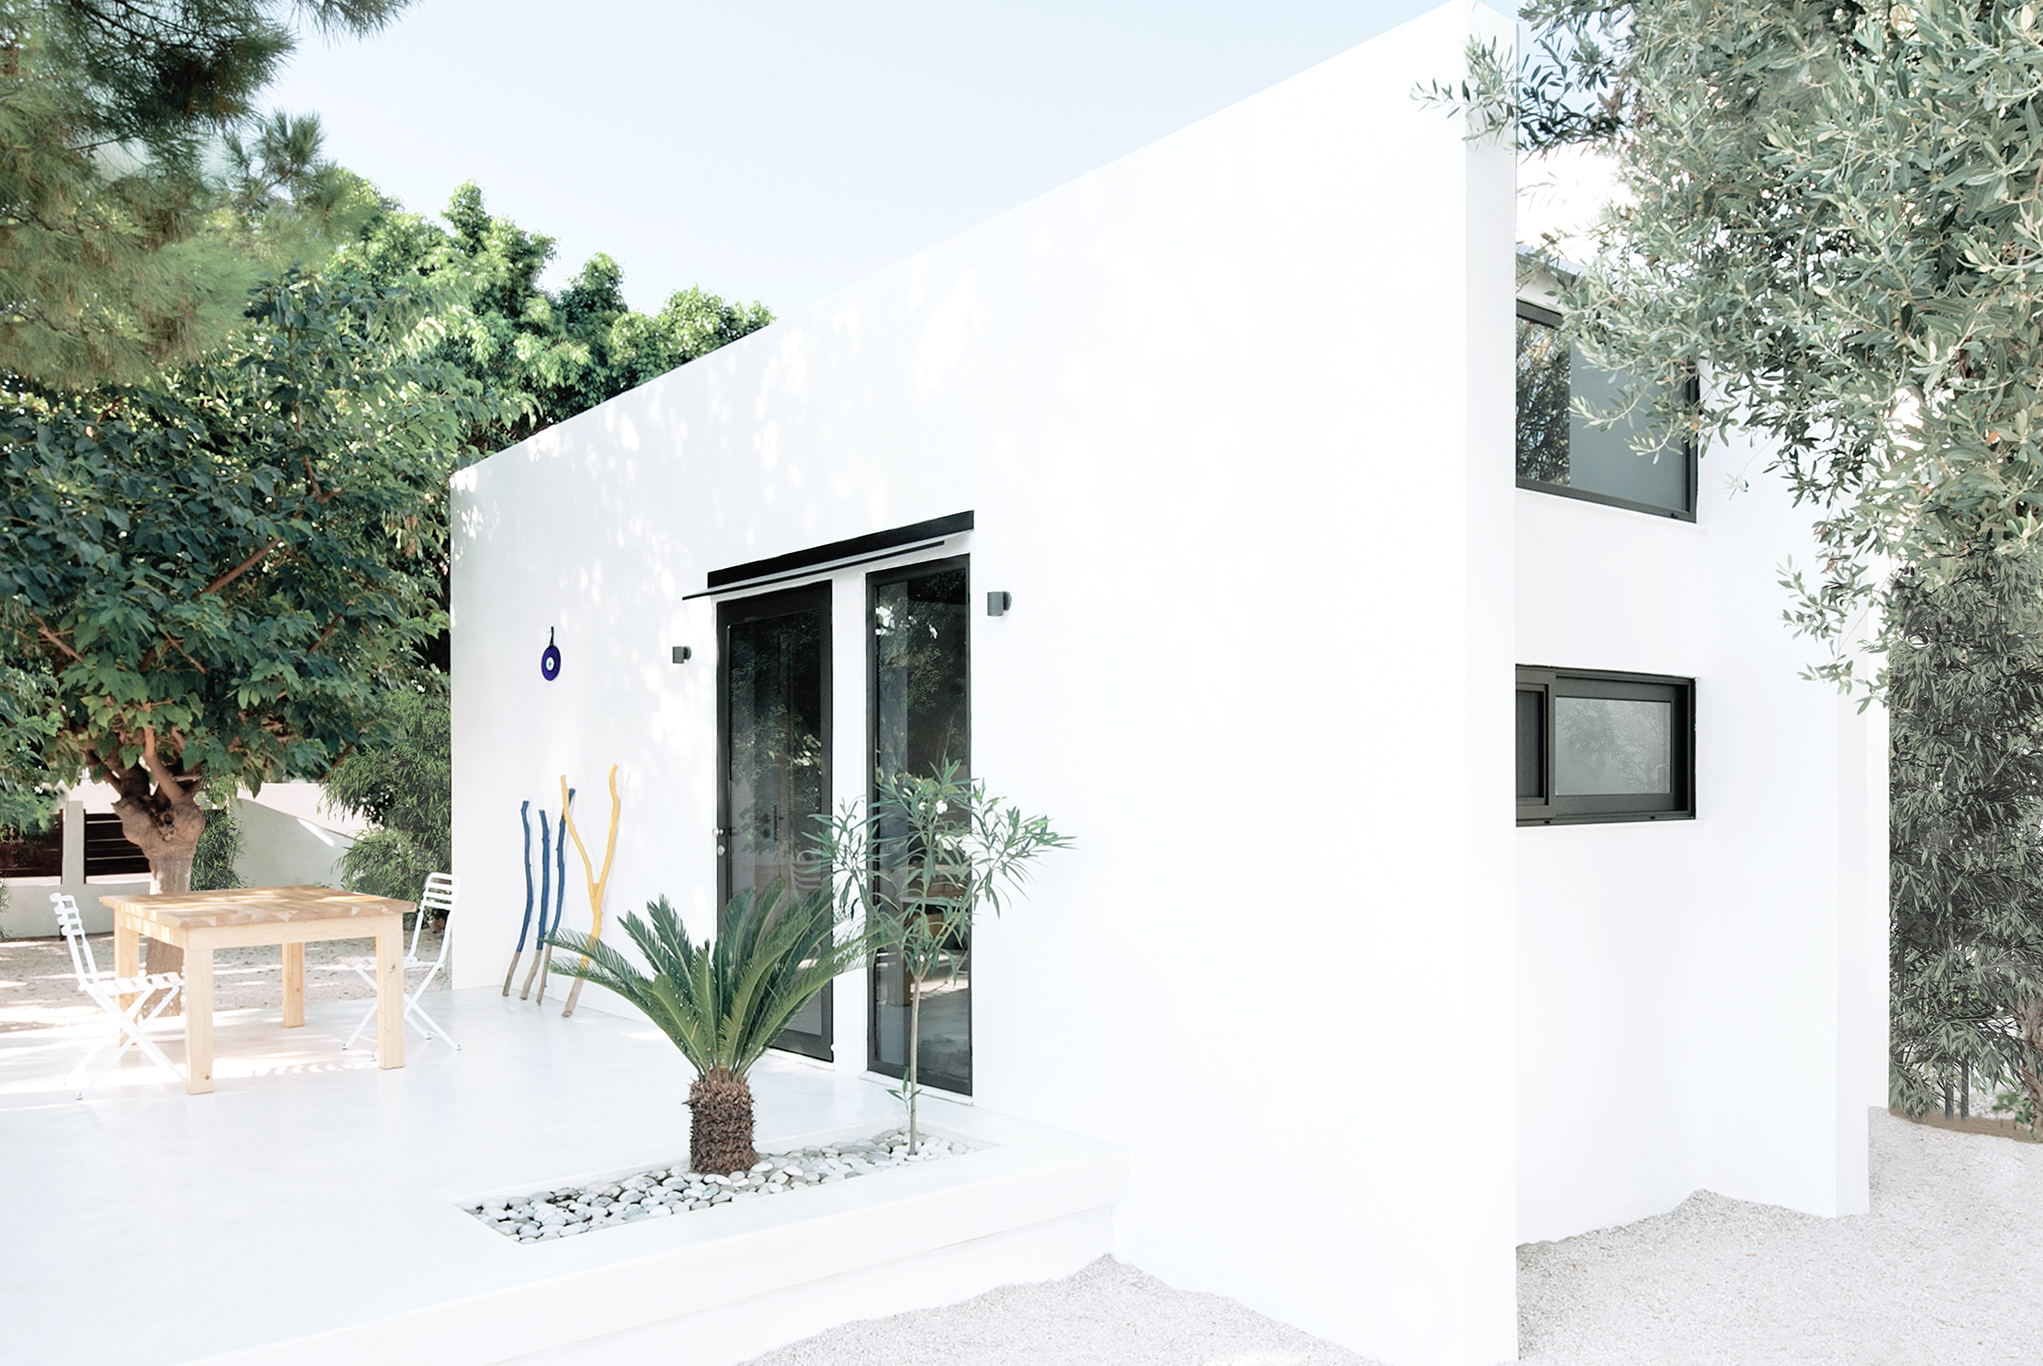 Tiny House Minimalist Greece Monocabin | Apartment Therapy on house design, simple home design, brown home design, formal home design, peaceful home design, interior design, mediterranean home design, baroque home design, experimental home design, americana home design, bedroom design, tropical home design, classic home design, piano home design, geometric home design, small home design, dark home design, modern home design, furniture design, bright home design,